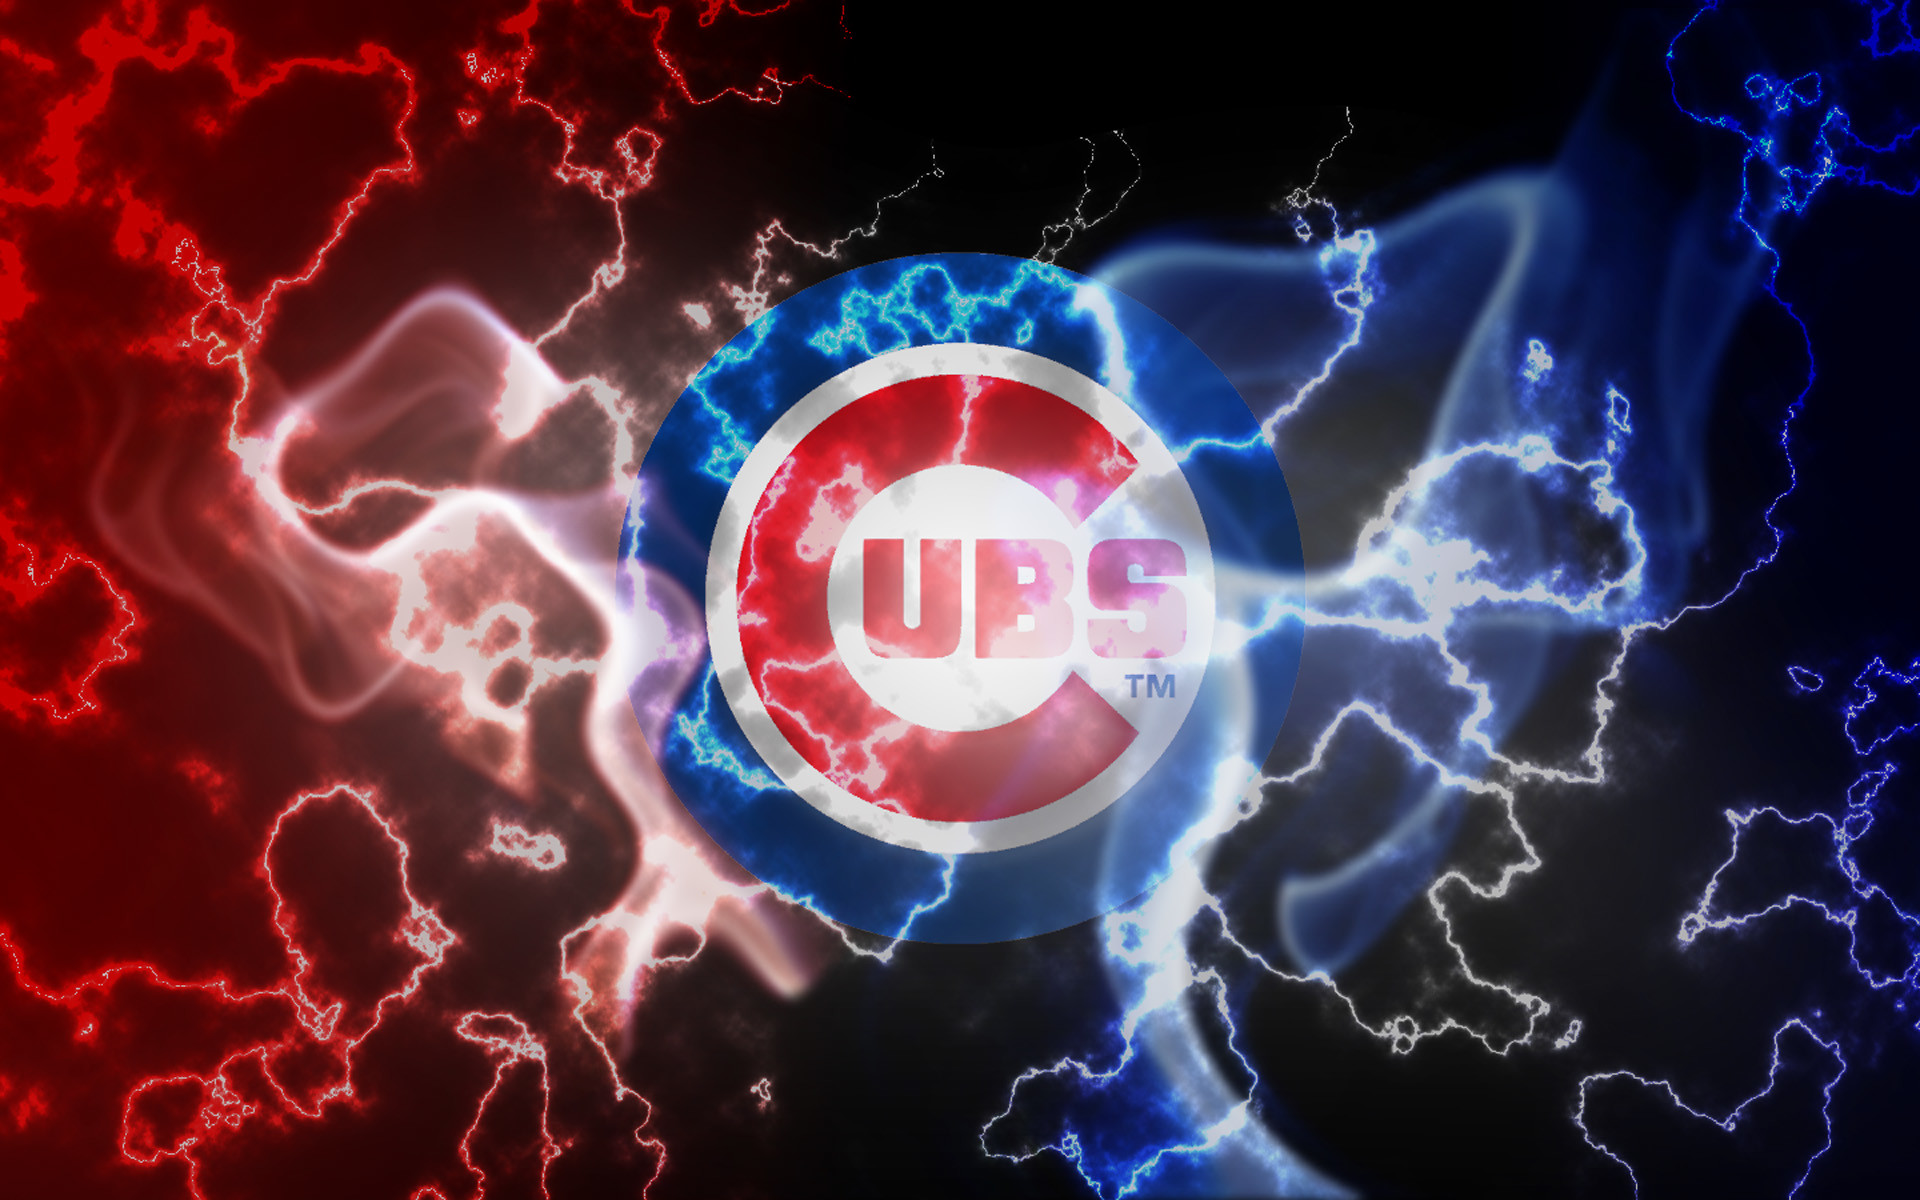 Chicago Cubs HD Wallpaper | HD Wallpapers, HD Backgrounds